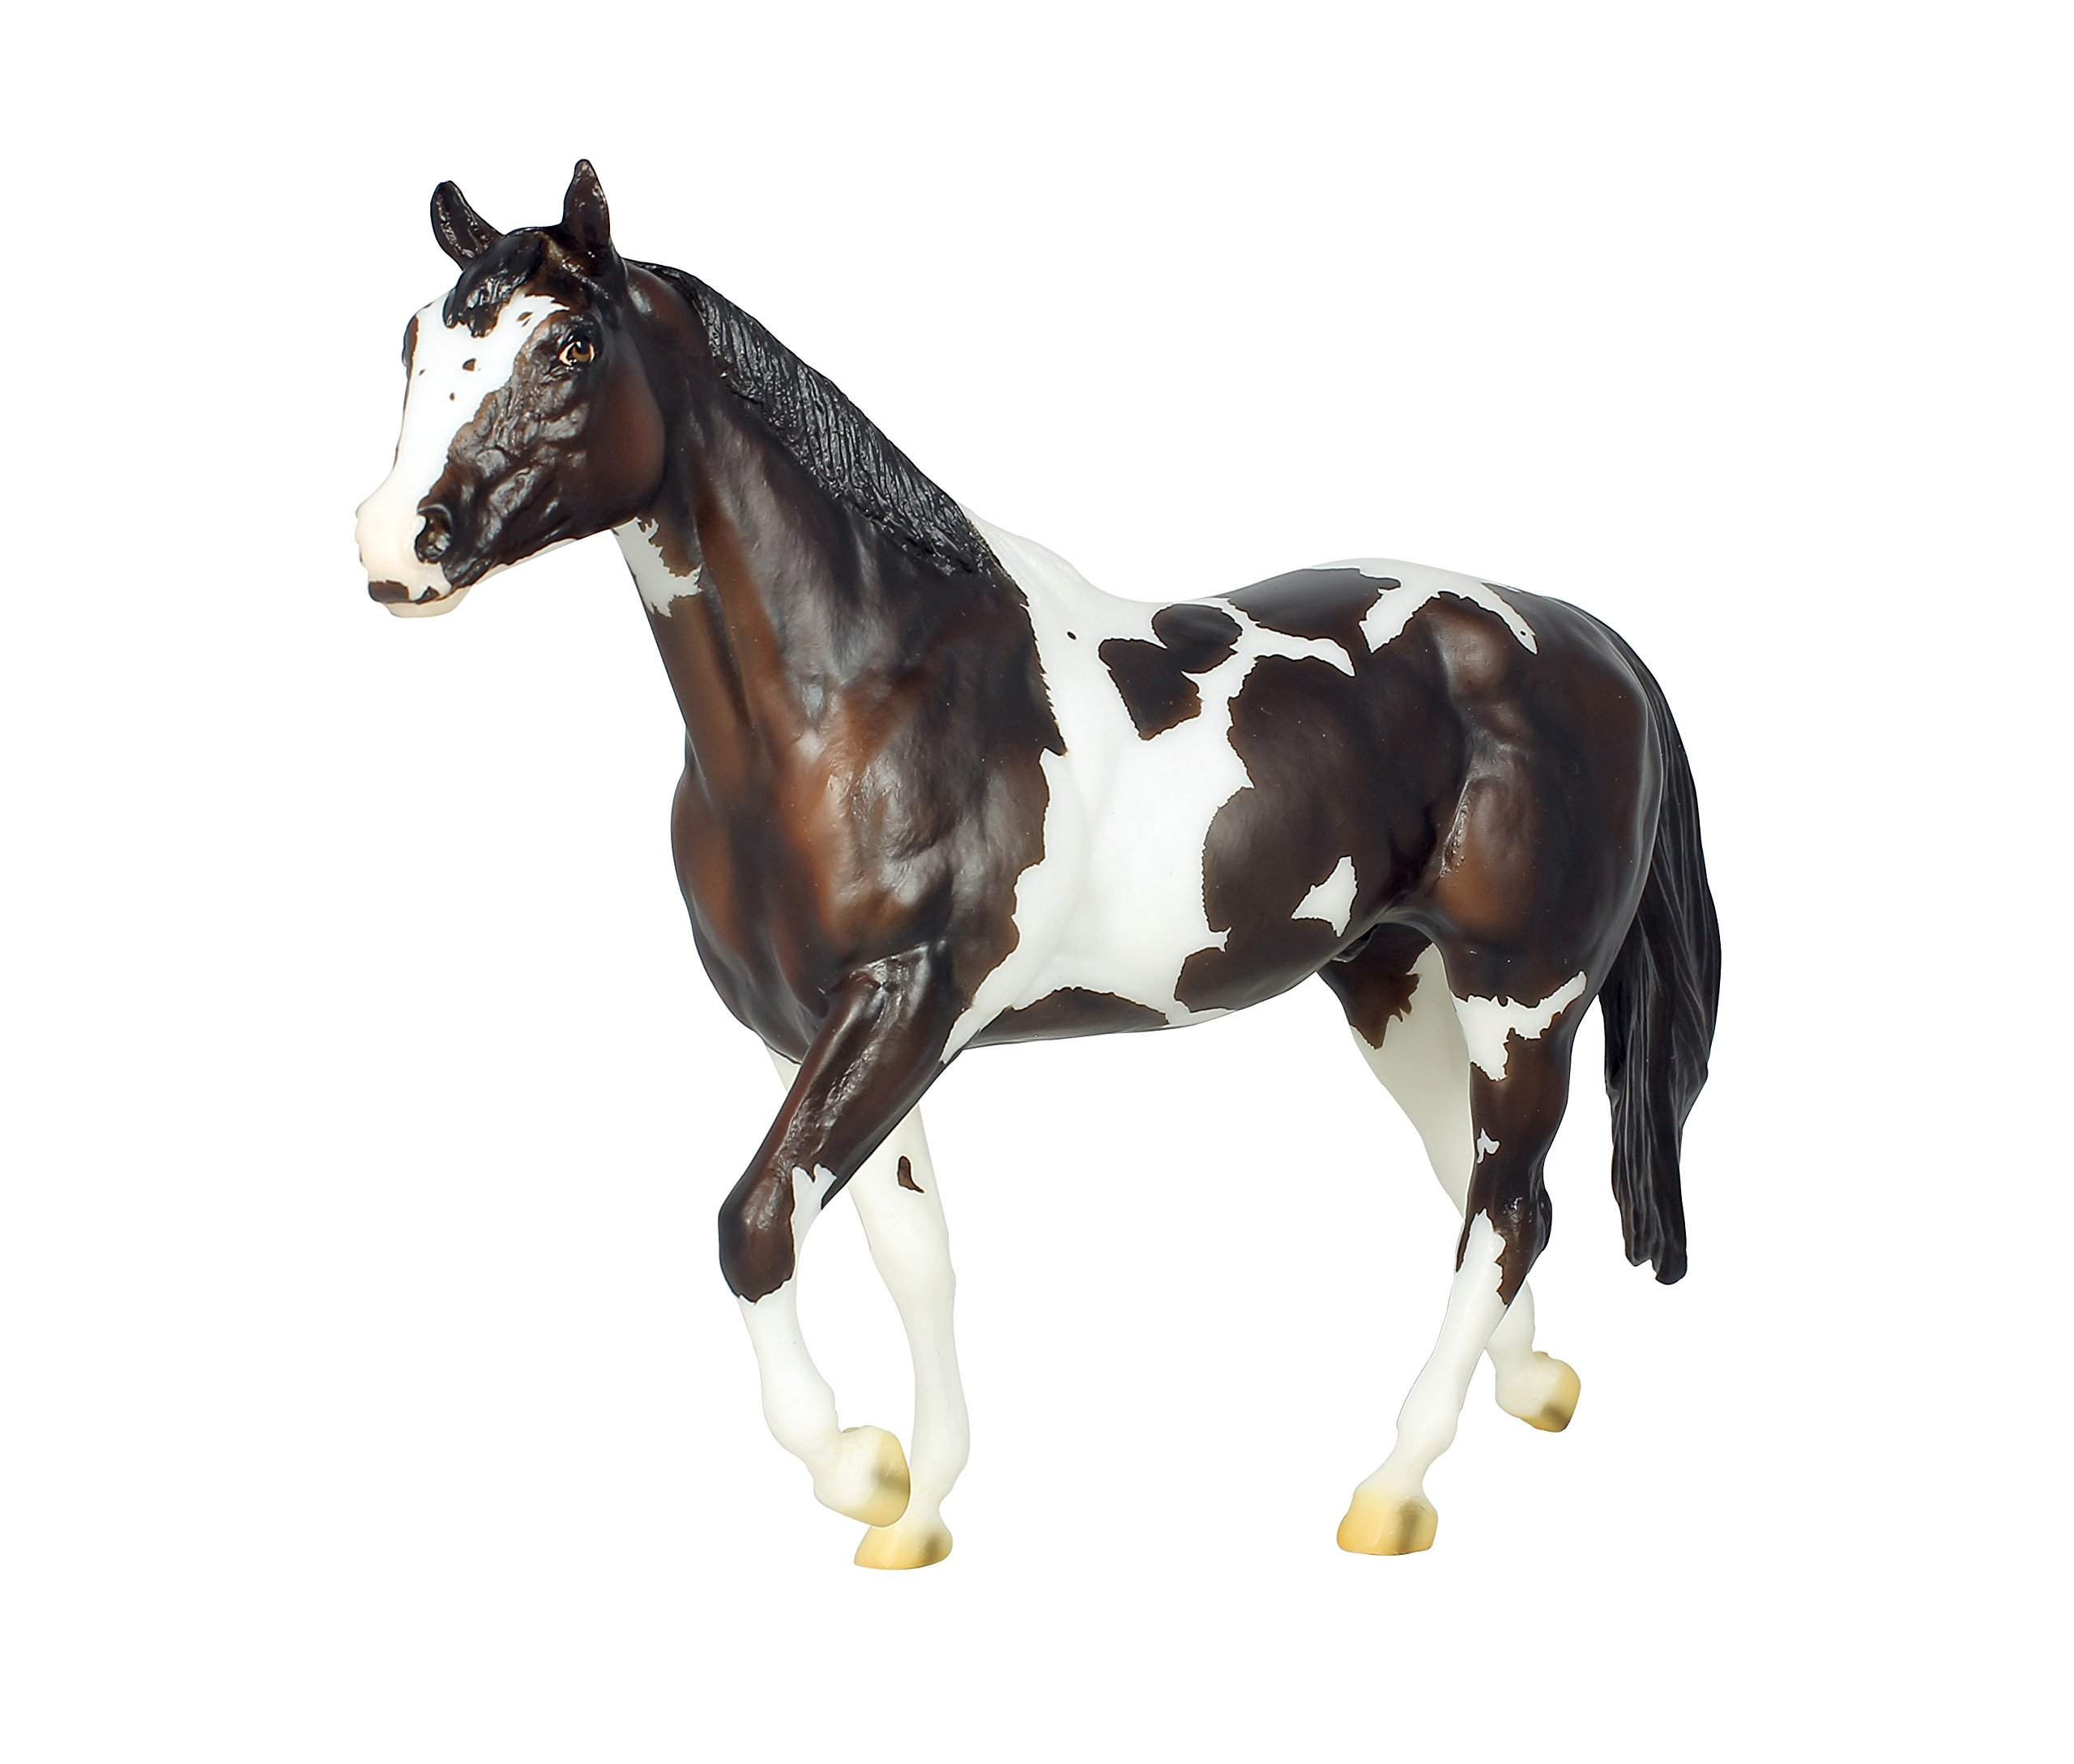 Breyer Traditonal Chocolate Chip Kisses Horse Toy Model